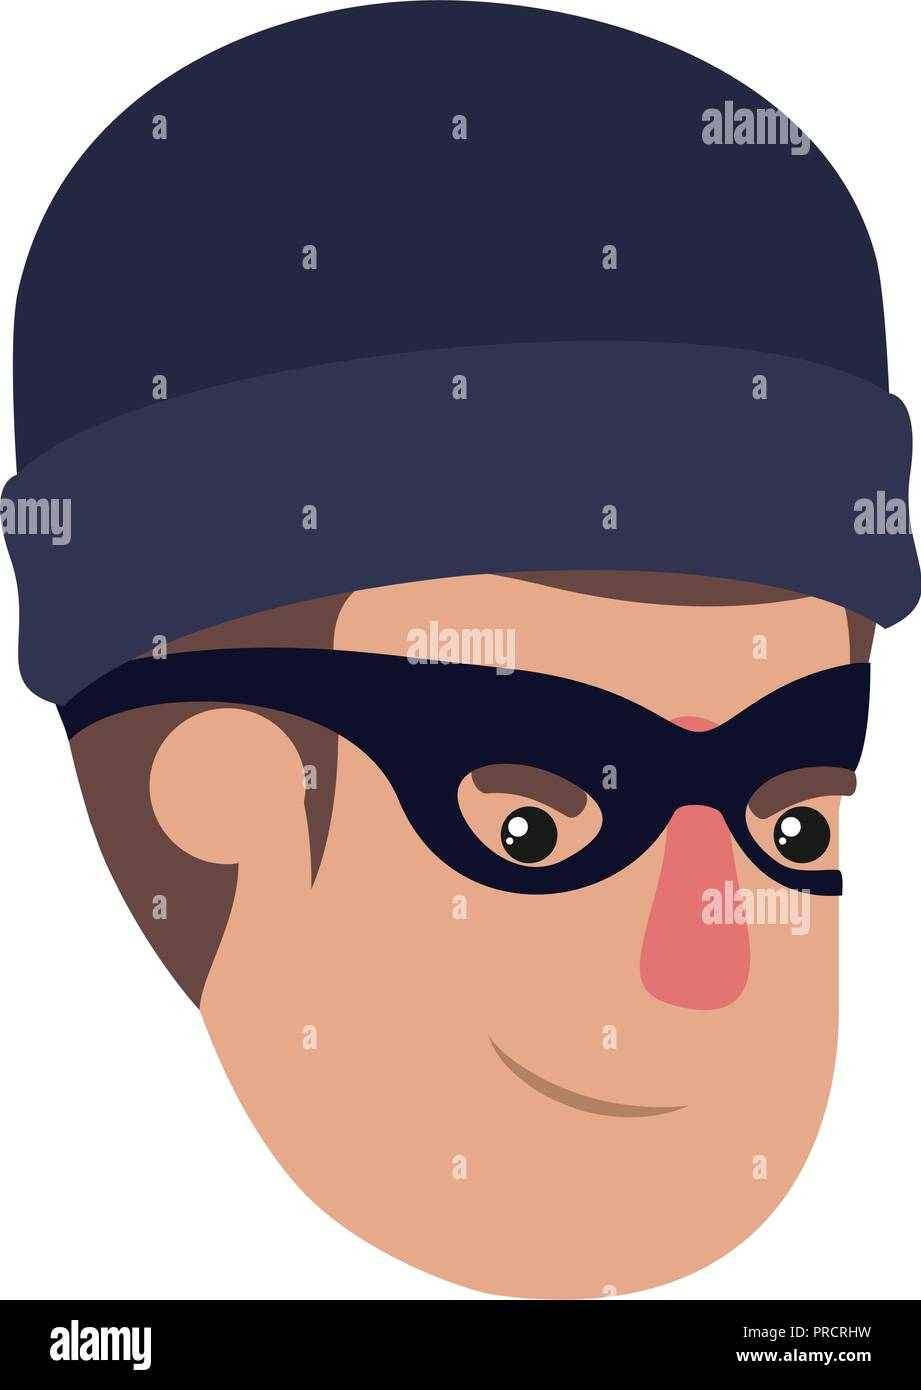 head of man with mask of thief avatar character - Stock Vector